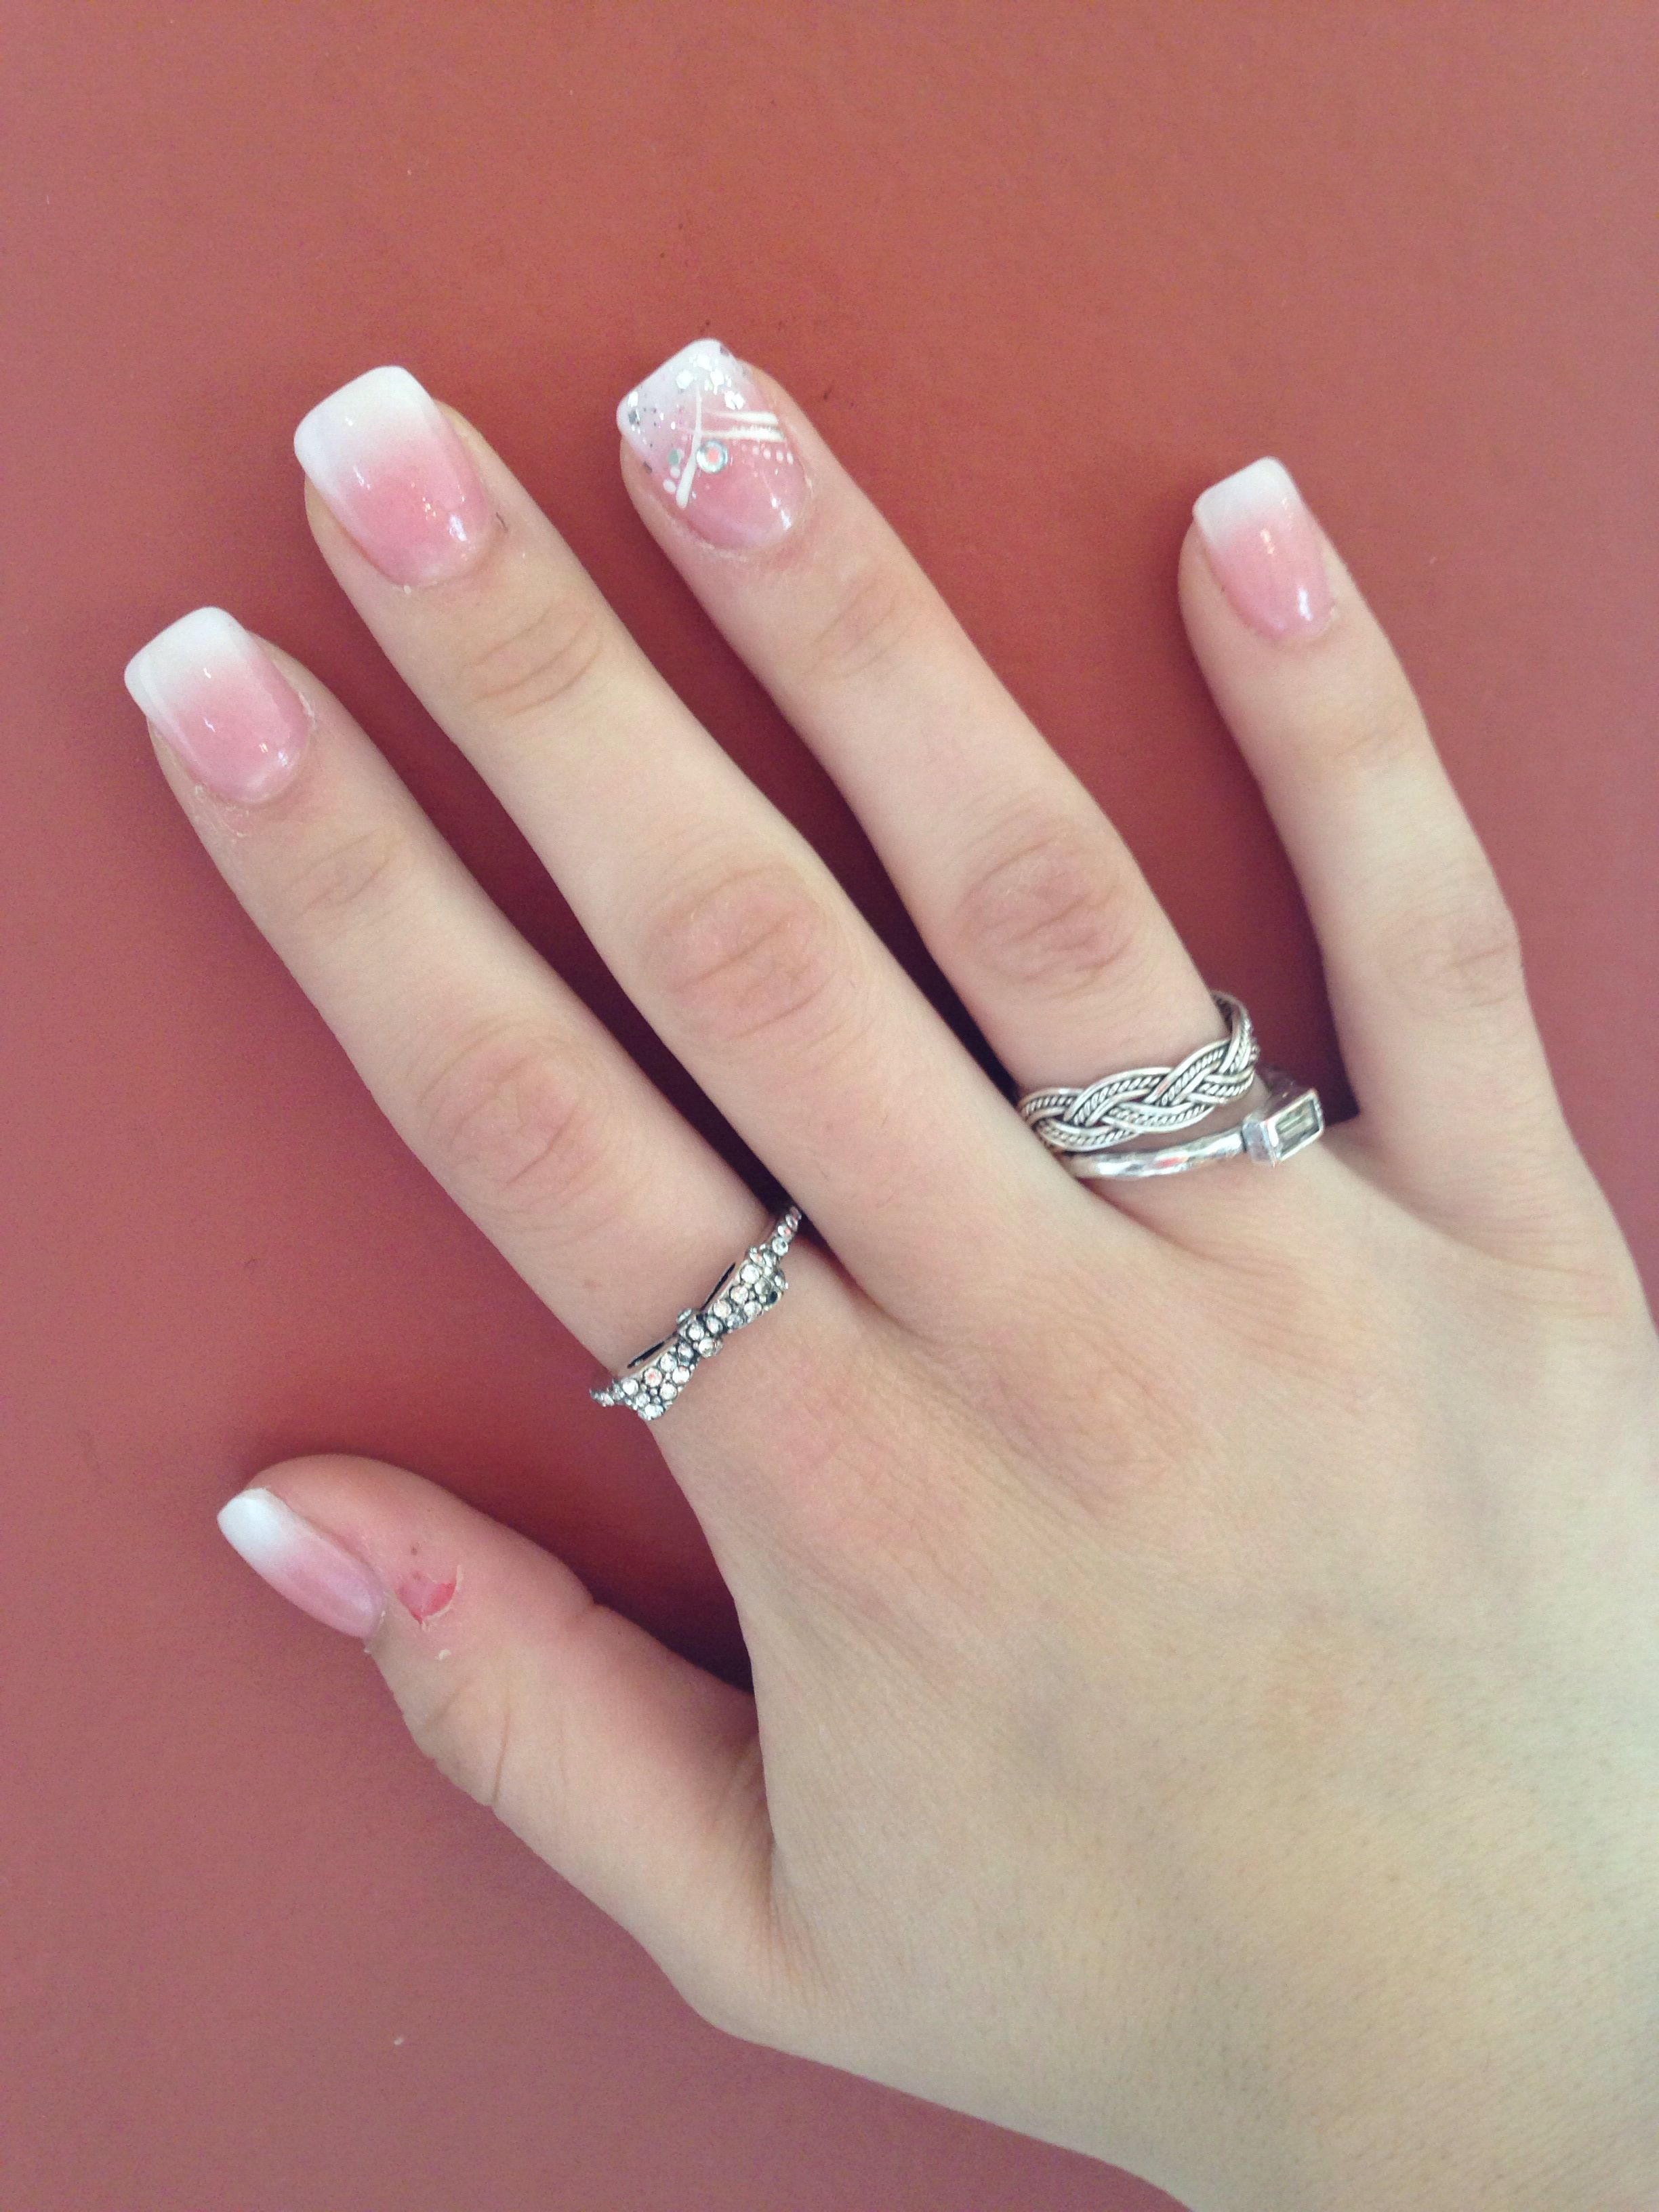 Full set acrylics. Ombre faded French manicure with ...